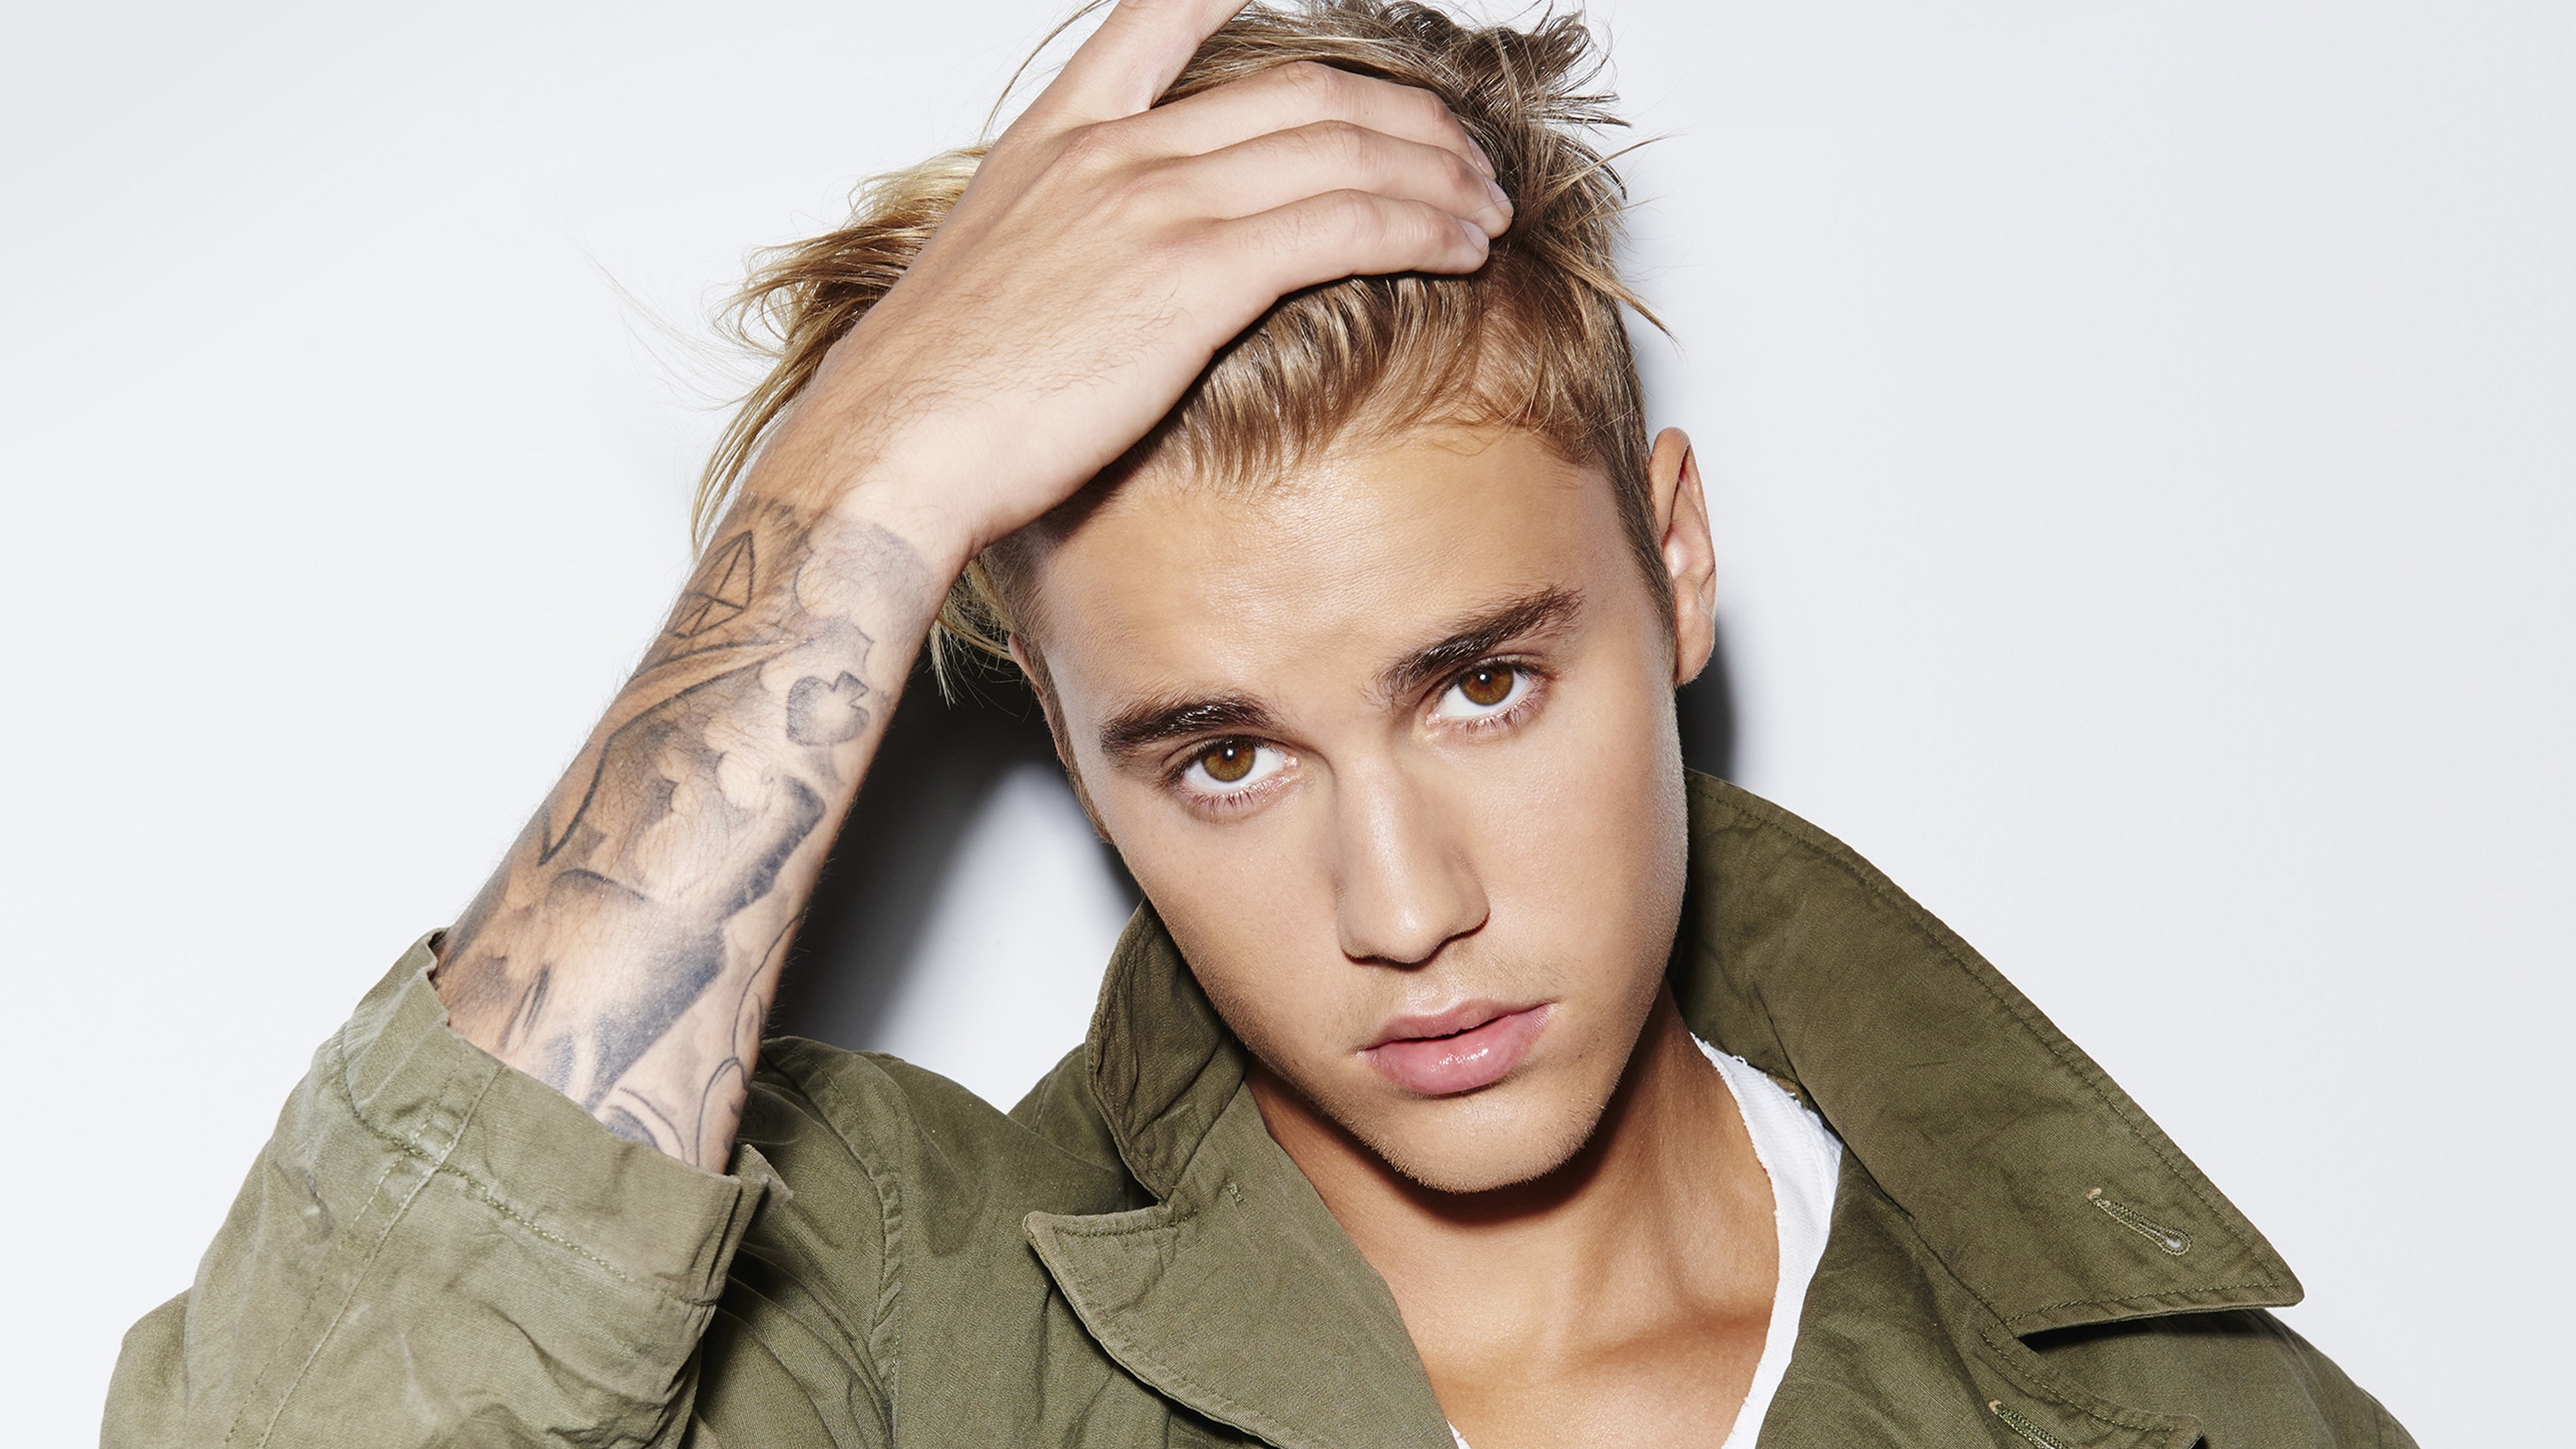 justin bieber 2016 wallpapers | hd wallpapers | id #16990